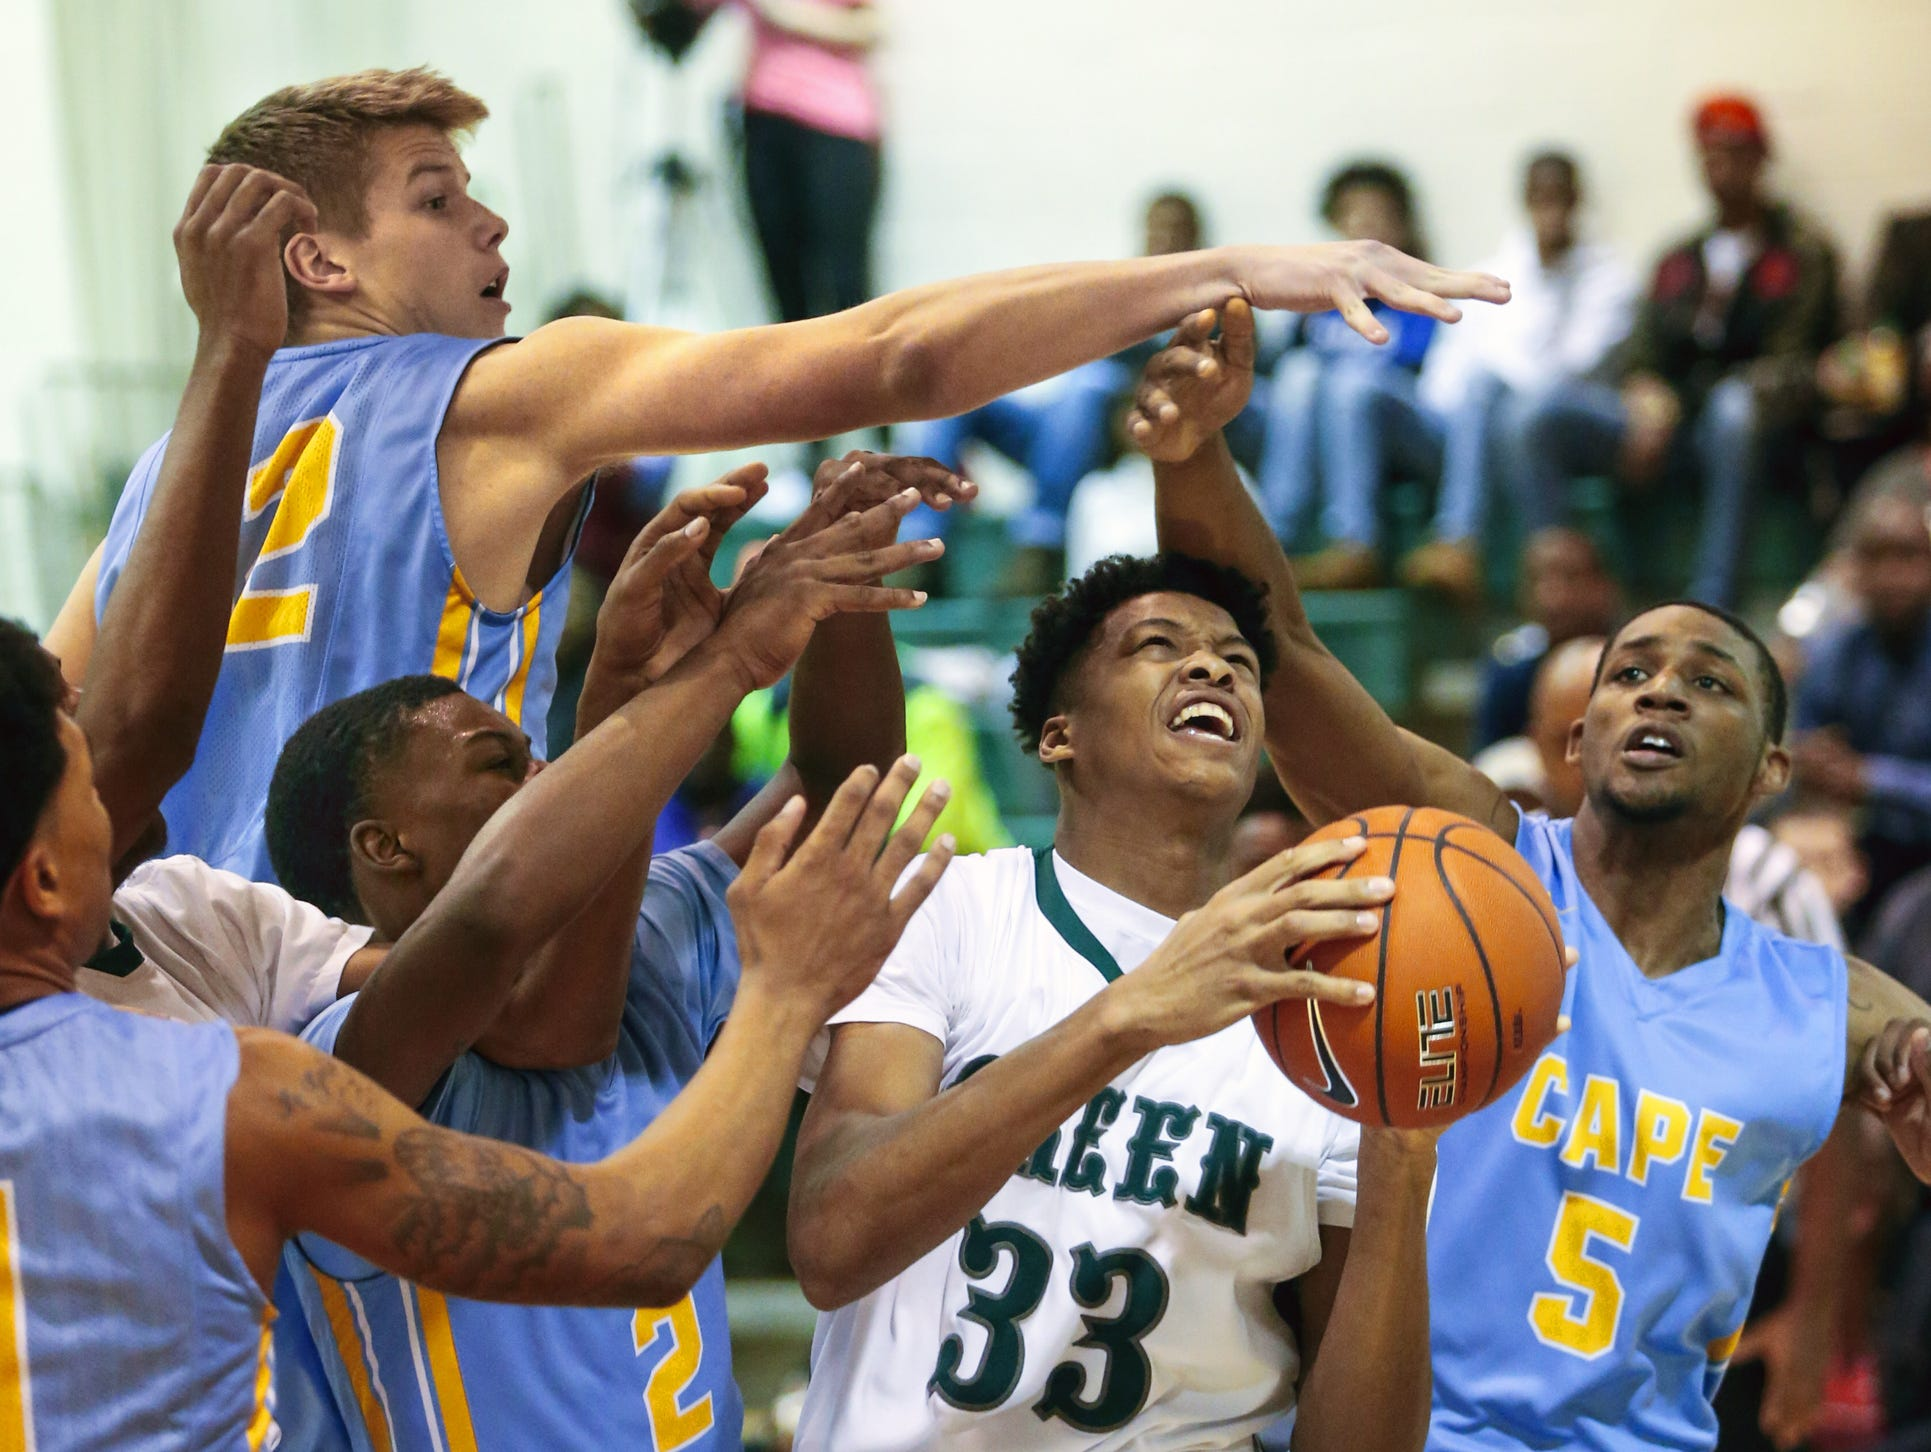 Mount Pleasant's KVonn Cramer (33) is surrounded under the basket by Cape Henlopen's Ian Robertson (top) and (from left) Jerry Harden, Cory Barnes and Randy Rickards in the first half of Mount Pleasant's 50-47 home win in the second round of the DIAA state tournament Friday.